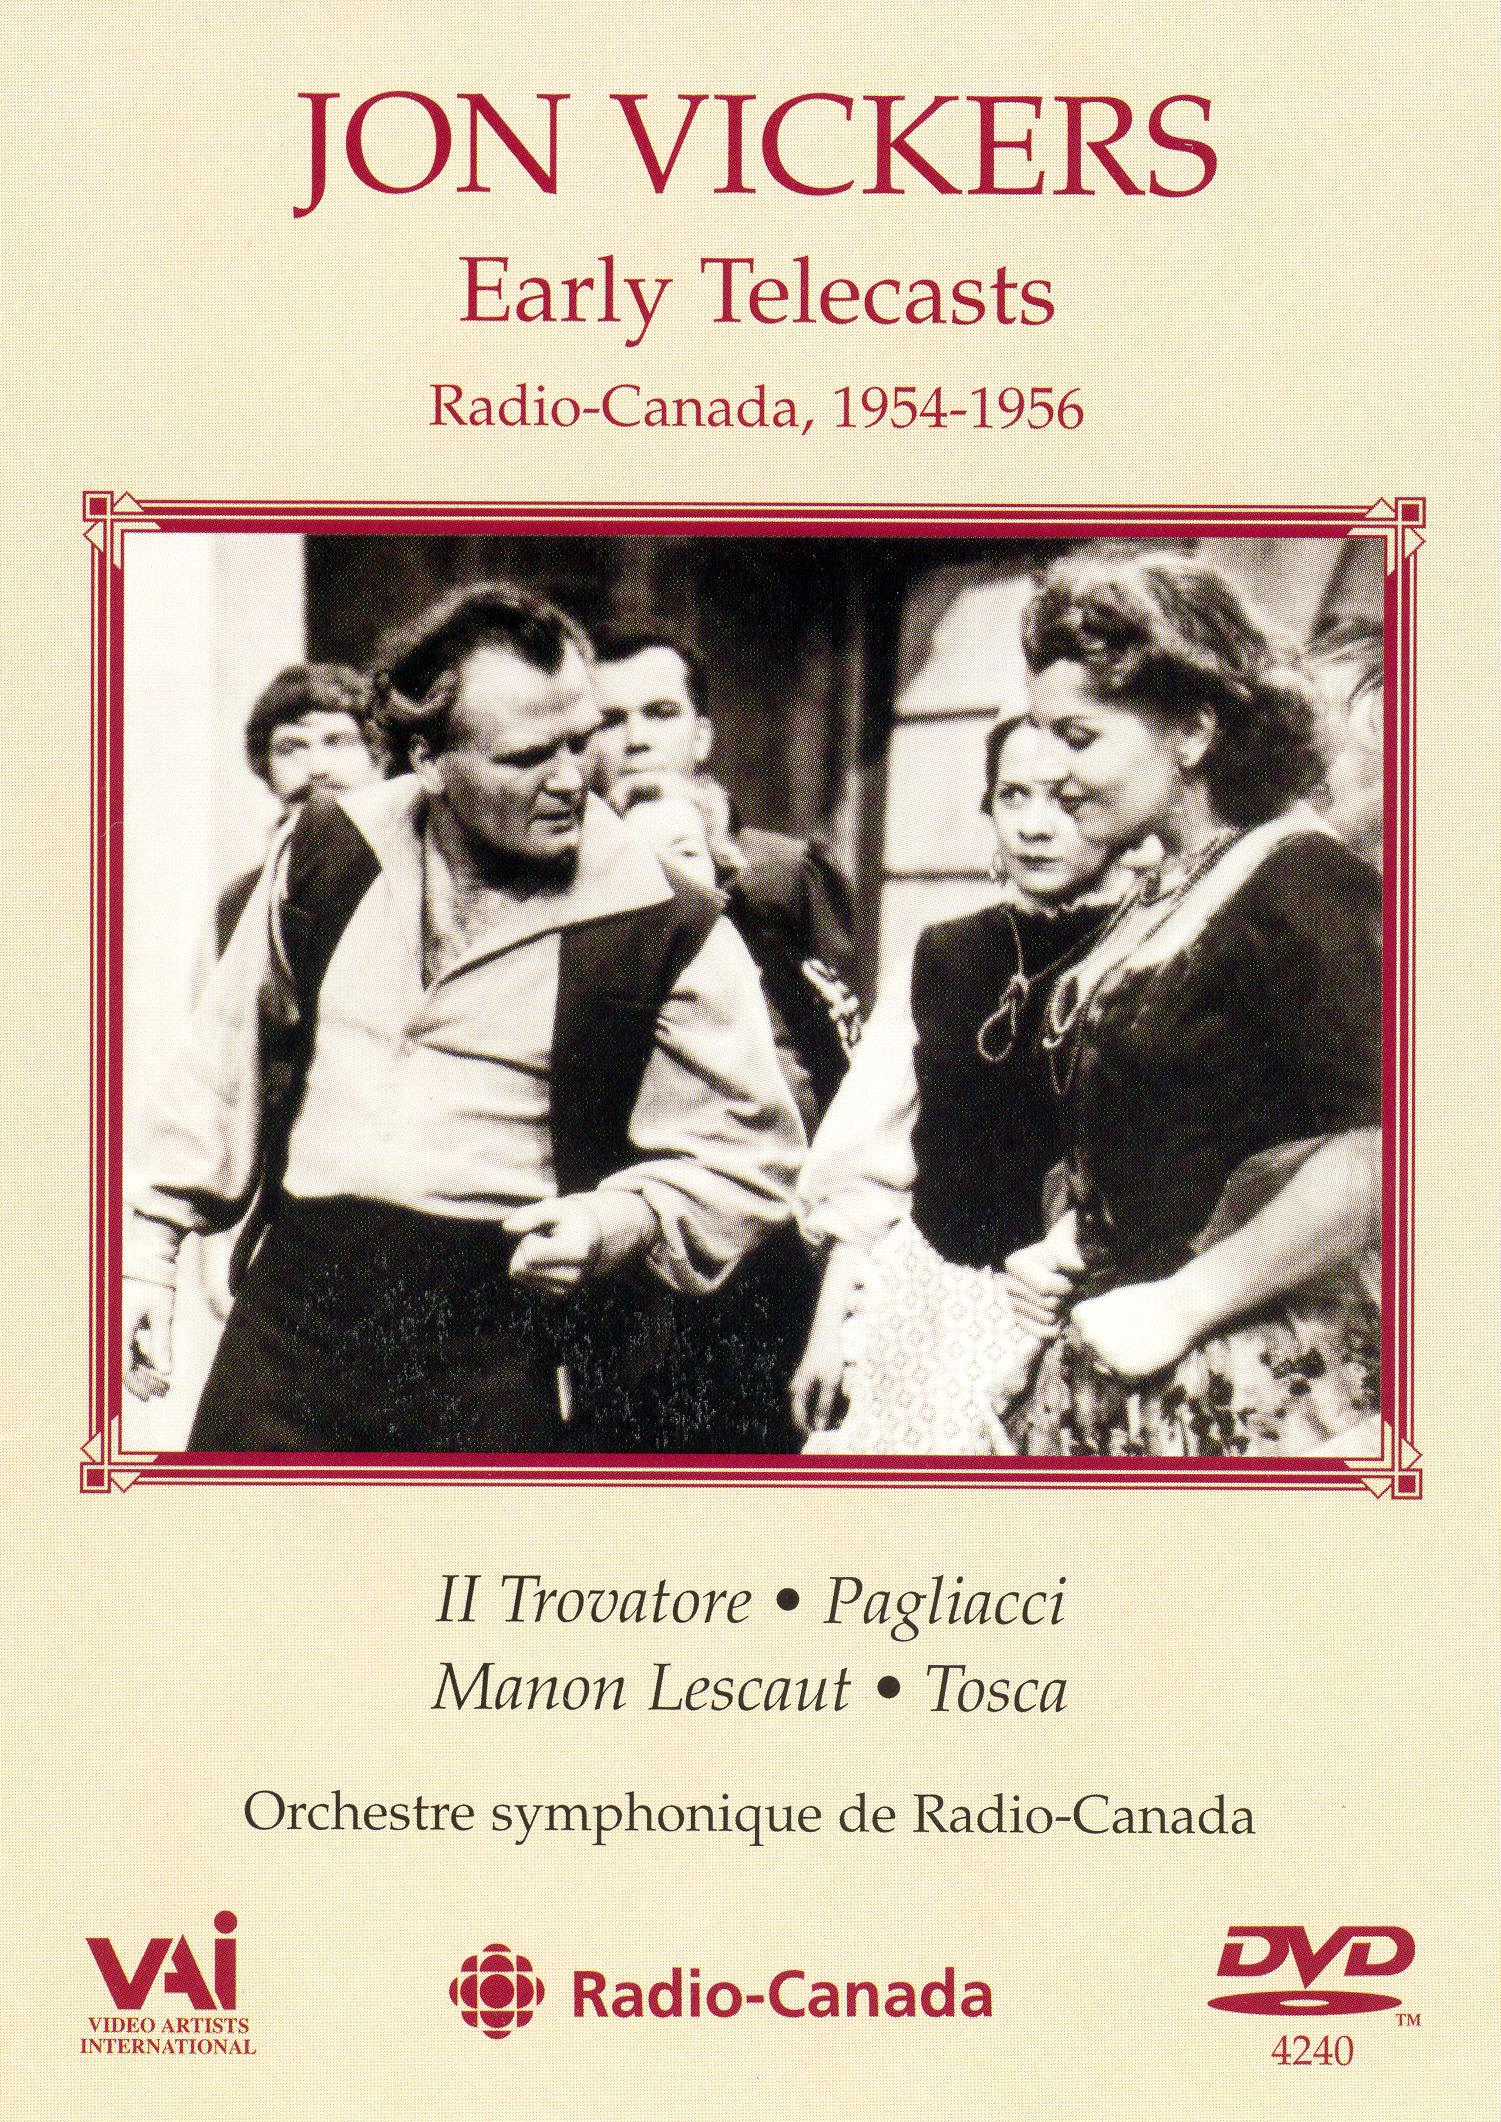 Jon Vickers: Early Telecasts - Radio-Canada, 1954-1956